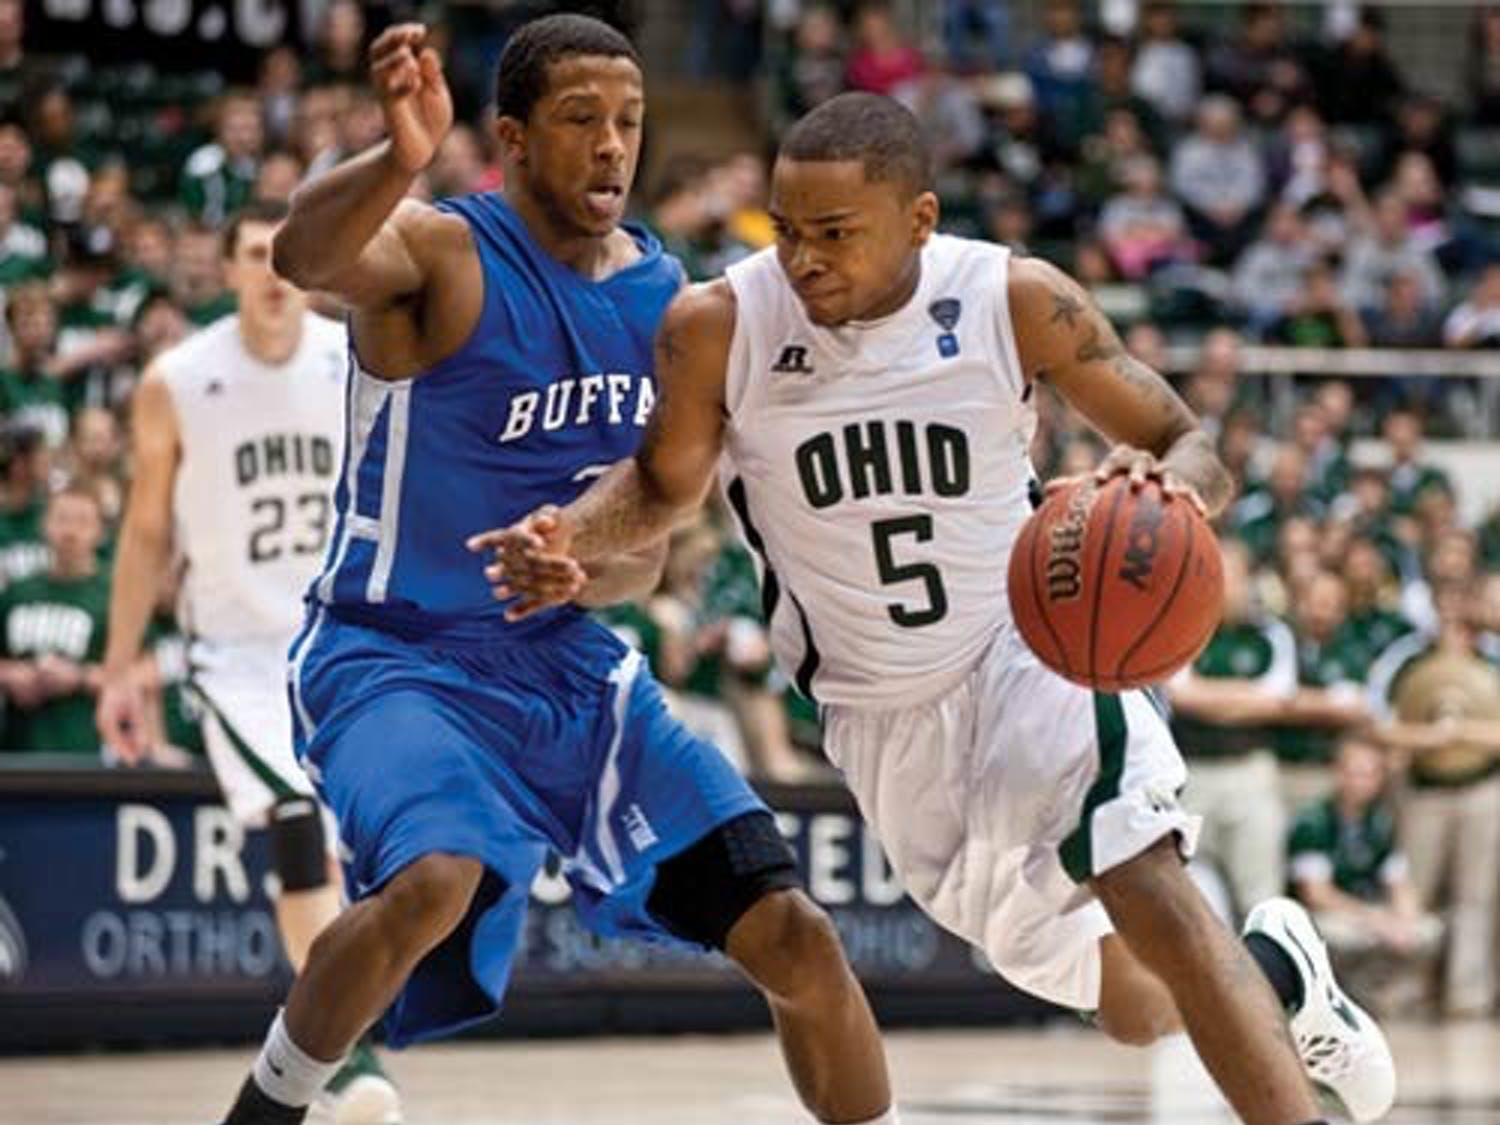 Men's Basketball: Akron, Ohio too close for comfort?